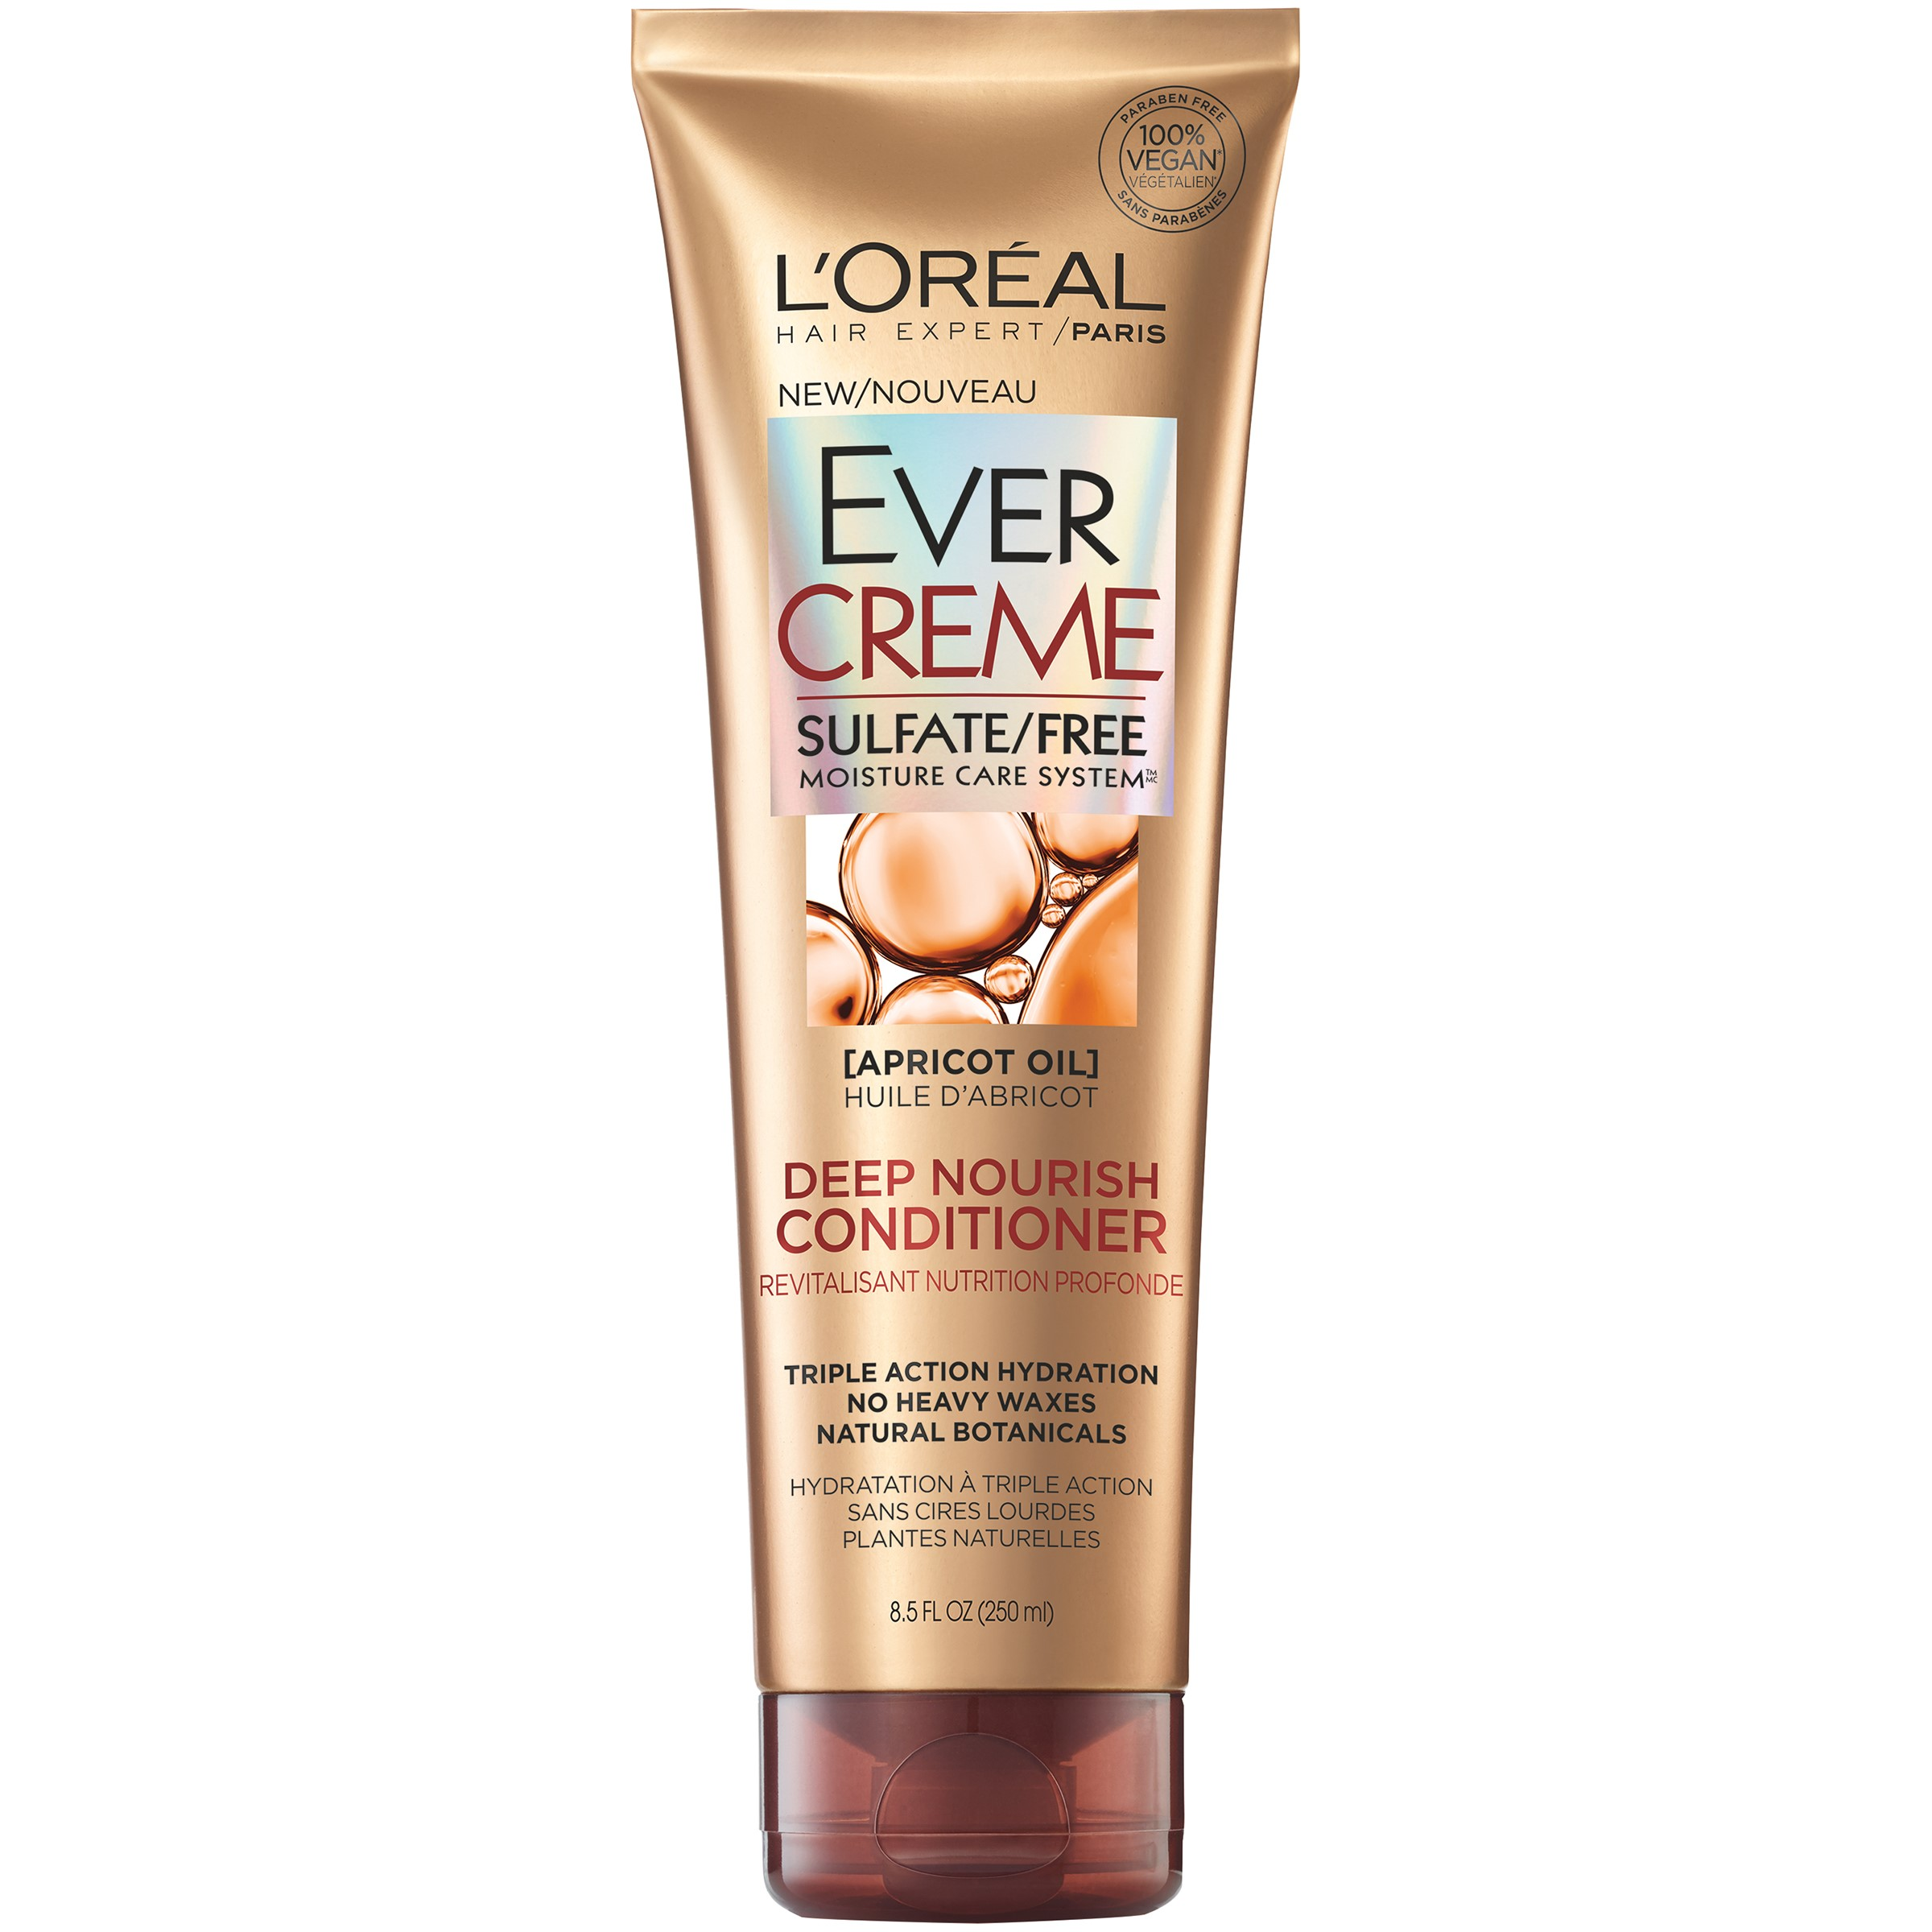 L'Oreal Paris EverCreme Deep Nourish Conditioner, Apricot Oil, 8.5 Fl Oz